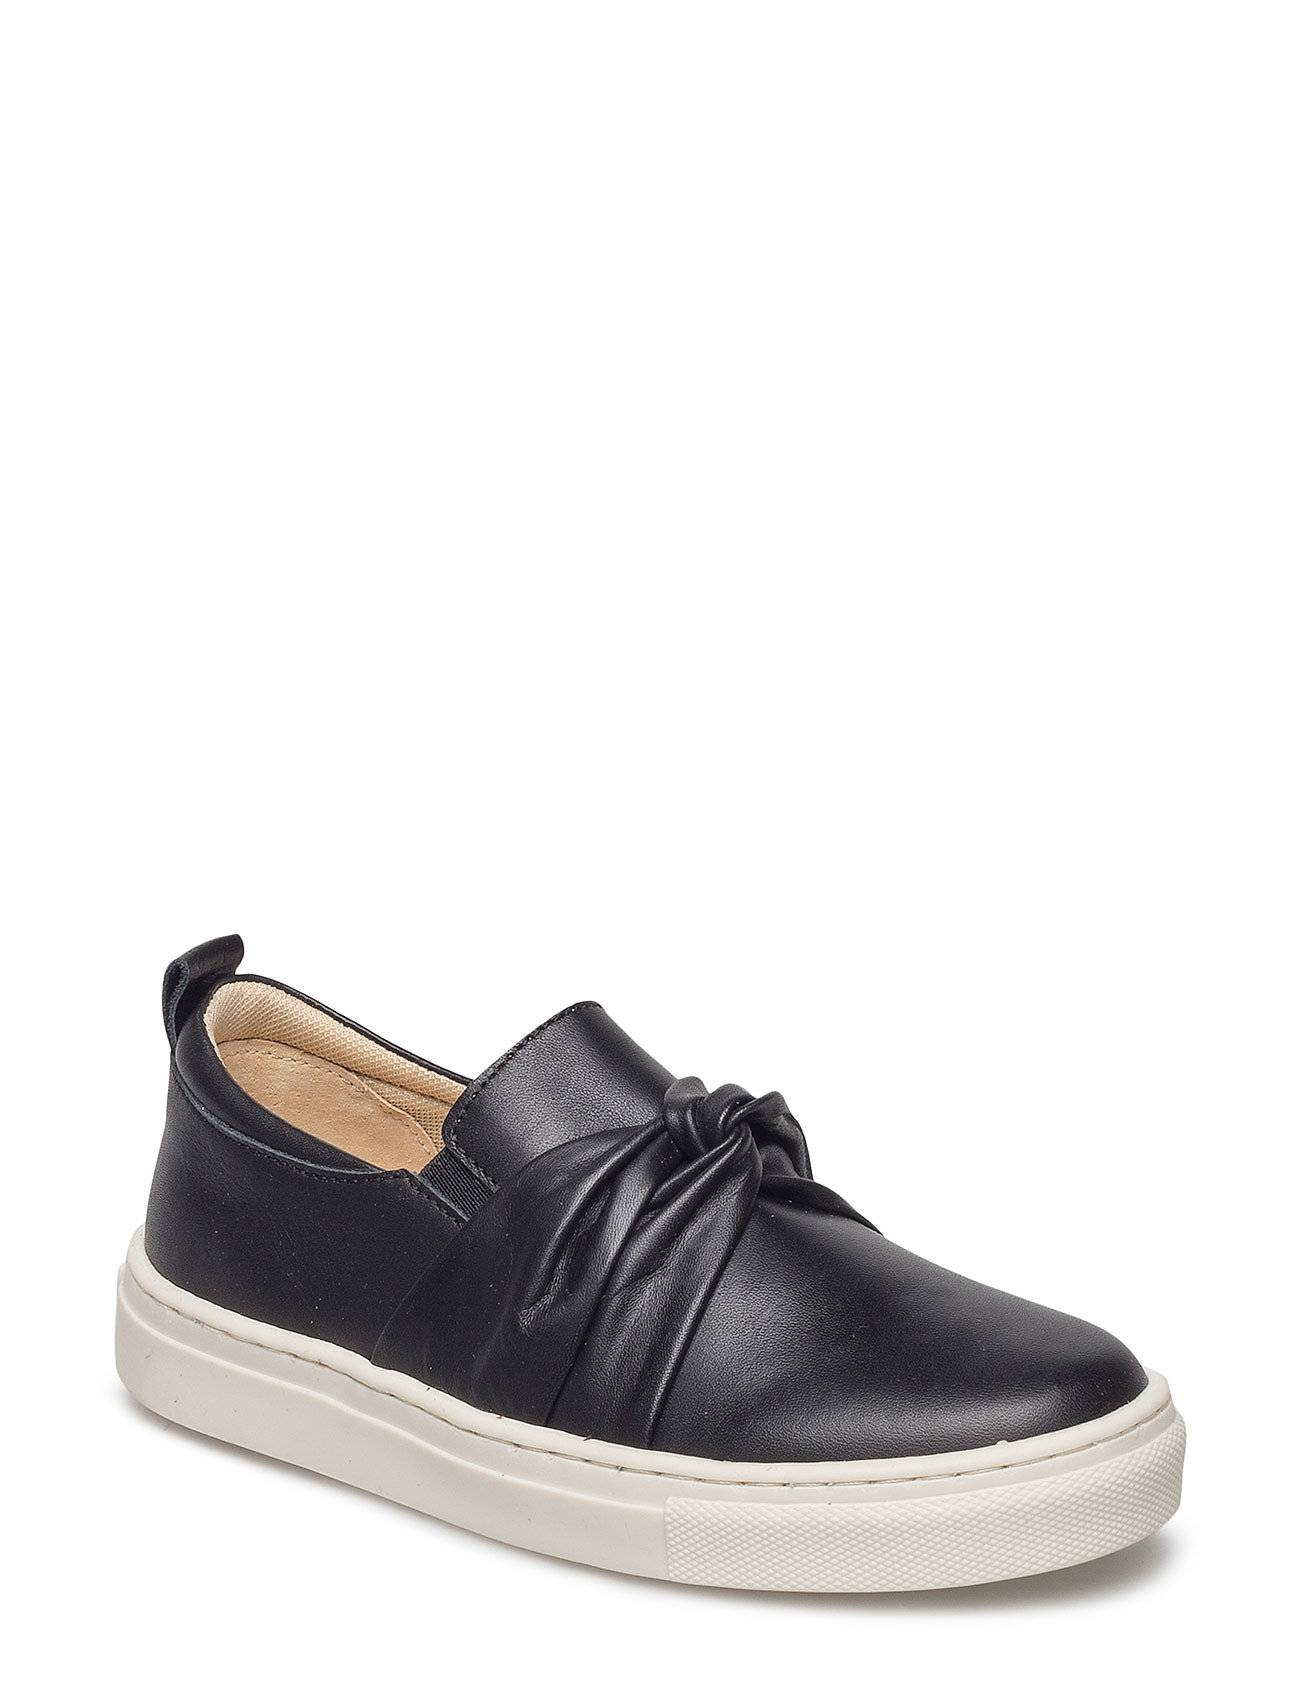 Move by Melton Girls - Sneaker With Knot